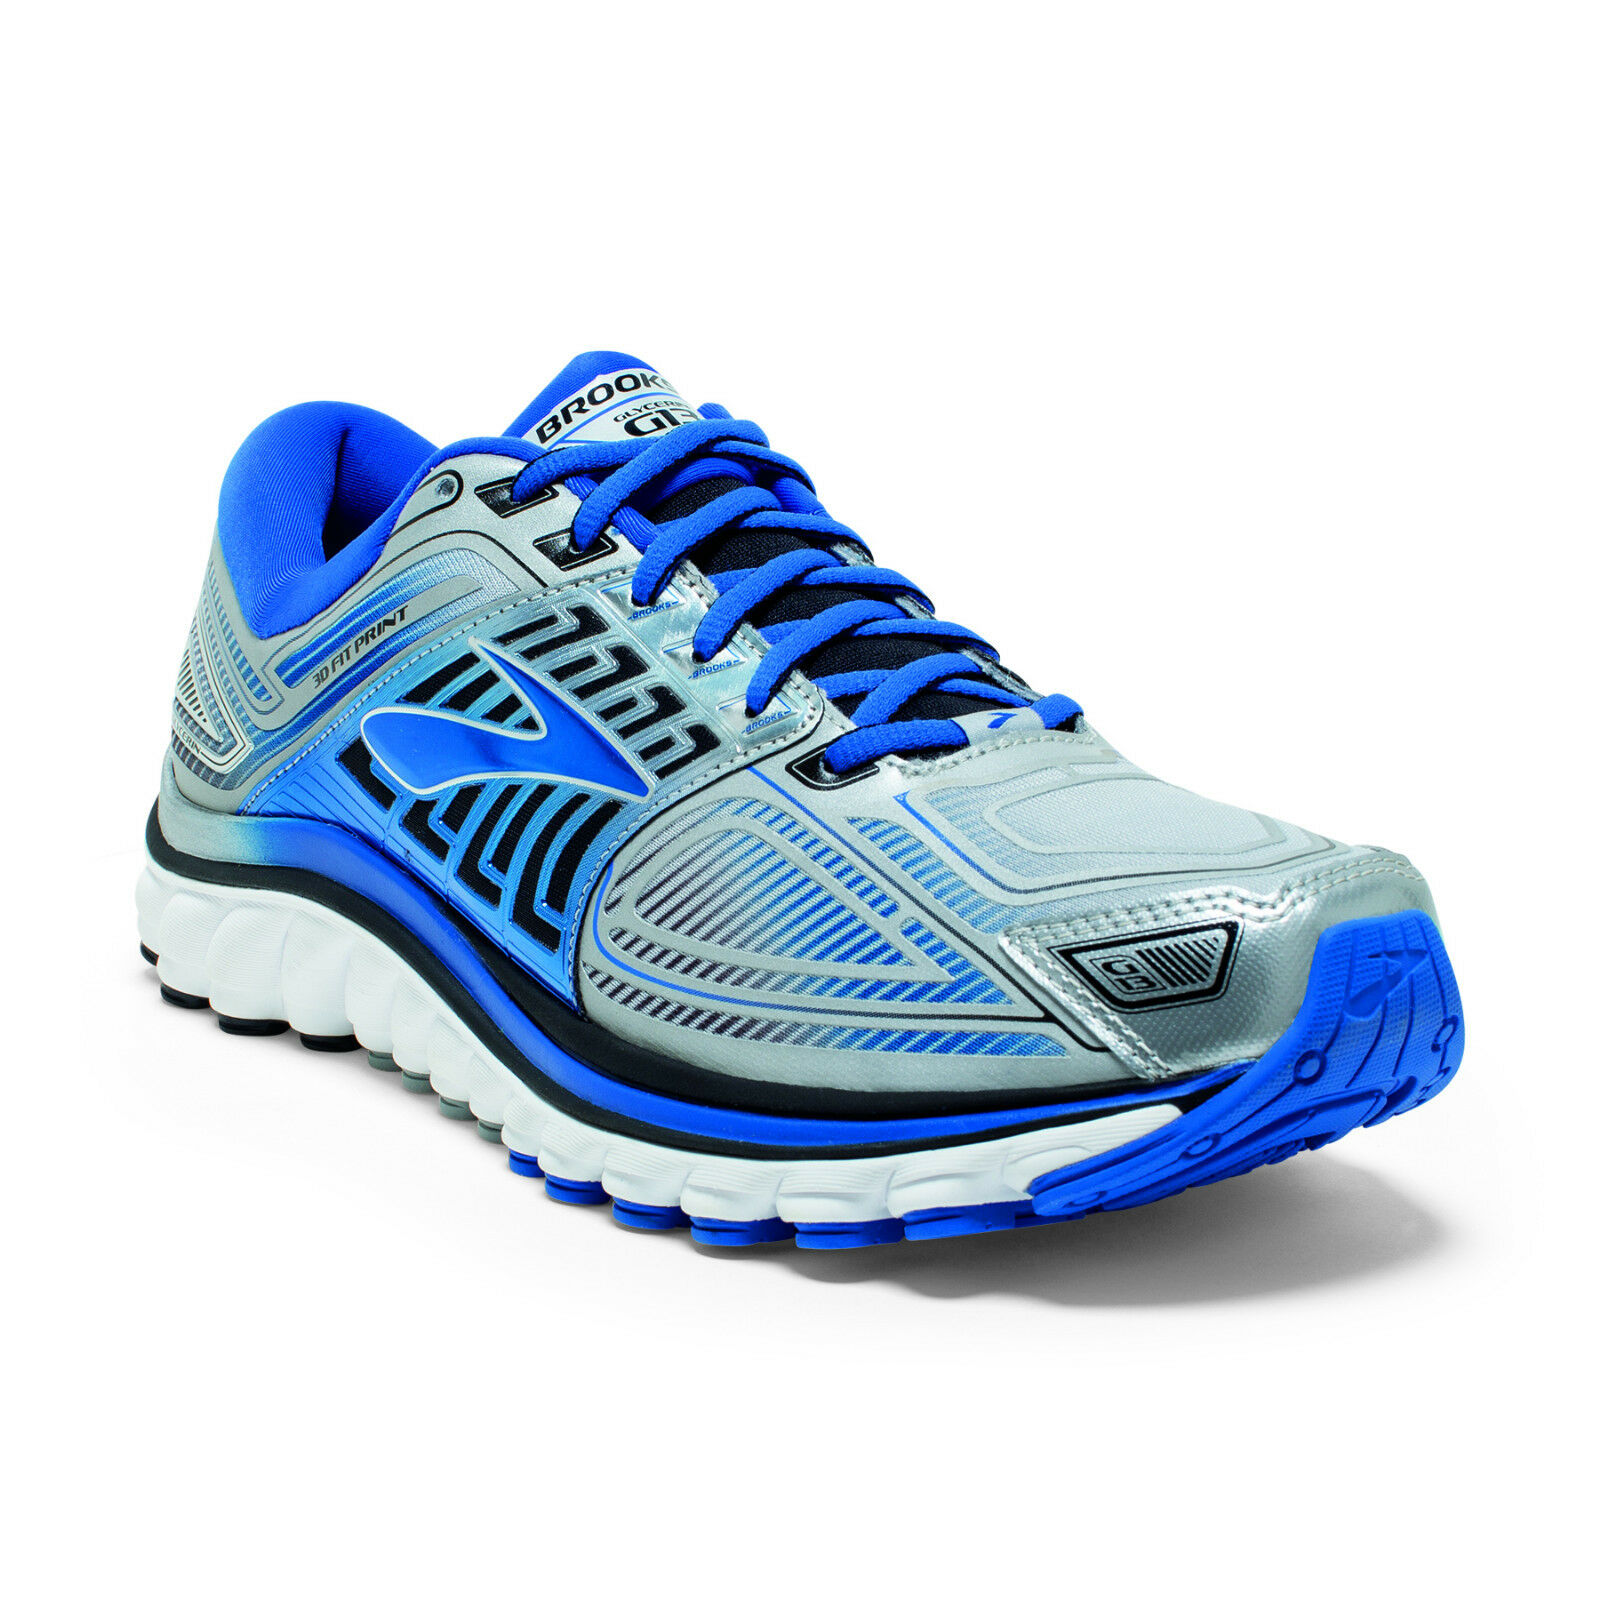 Brooks Glycerin 13 Mens Running shoes (D) (095) + Free Aus Delivery